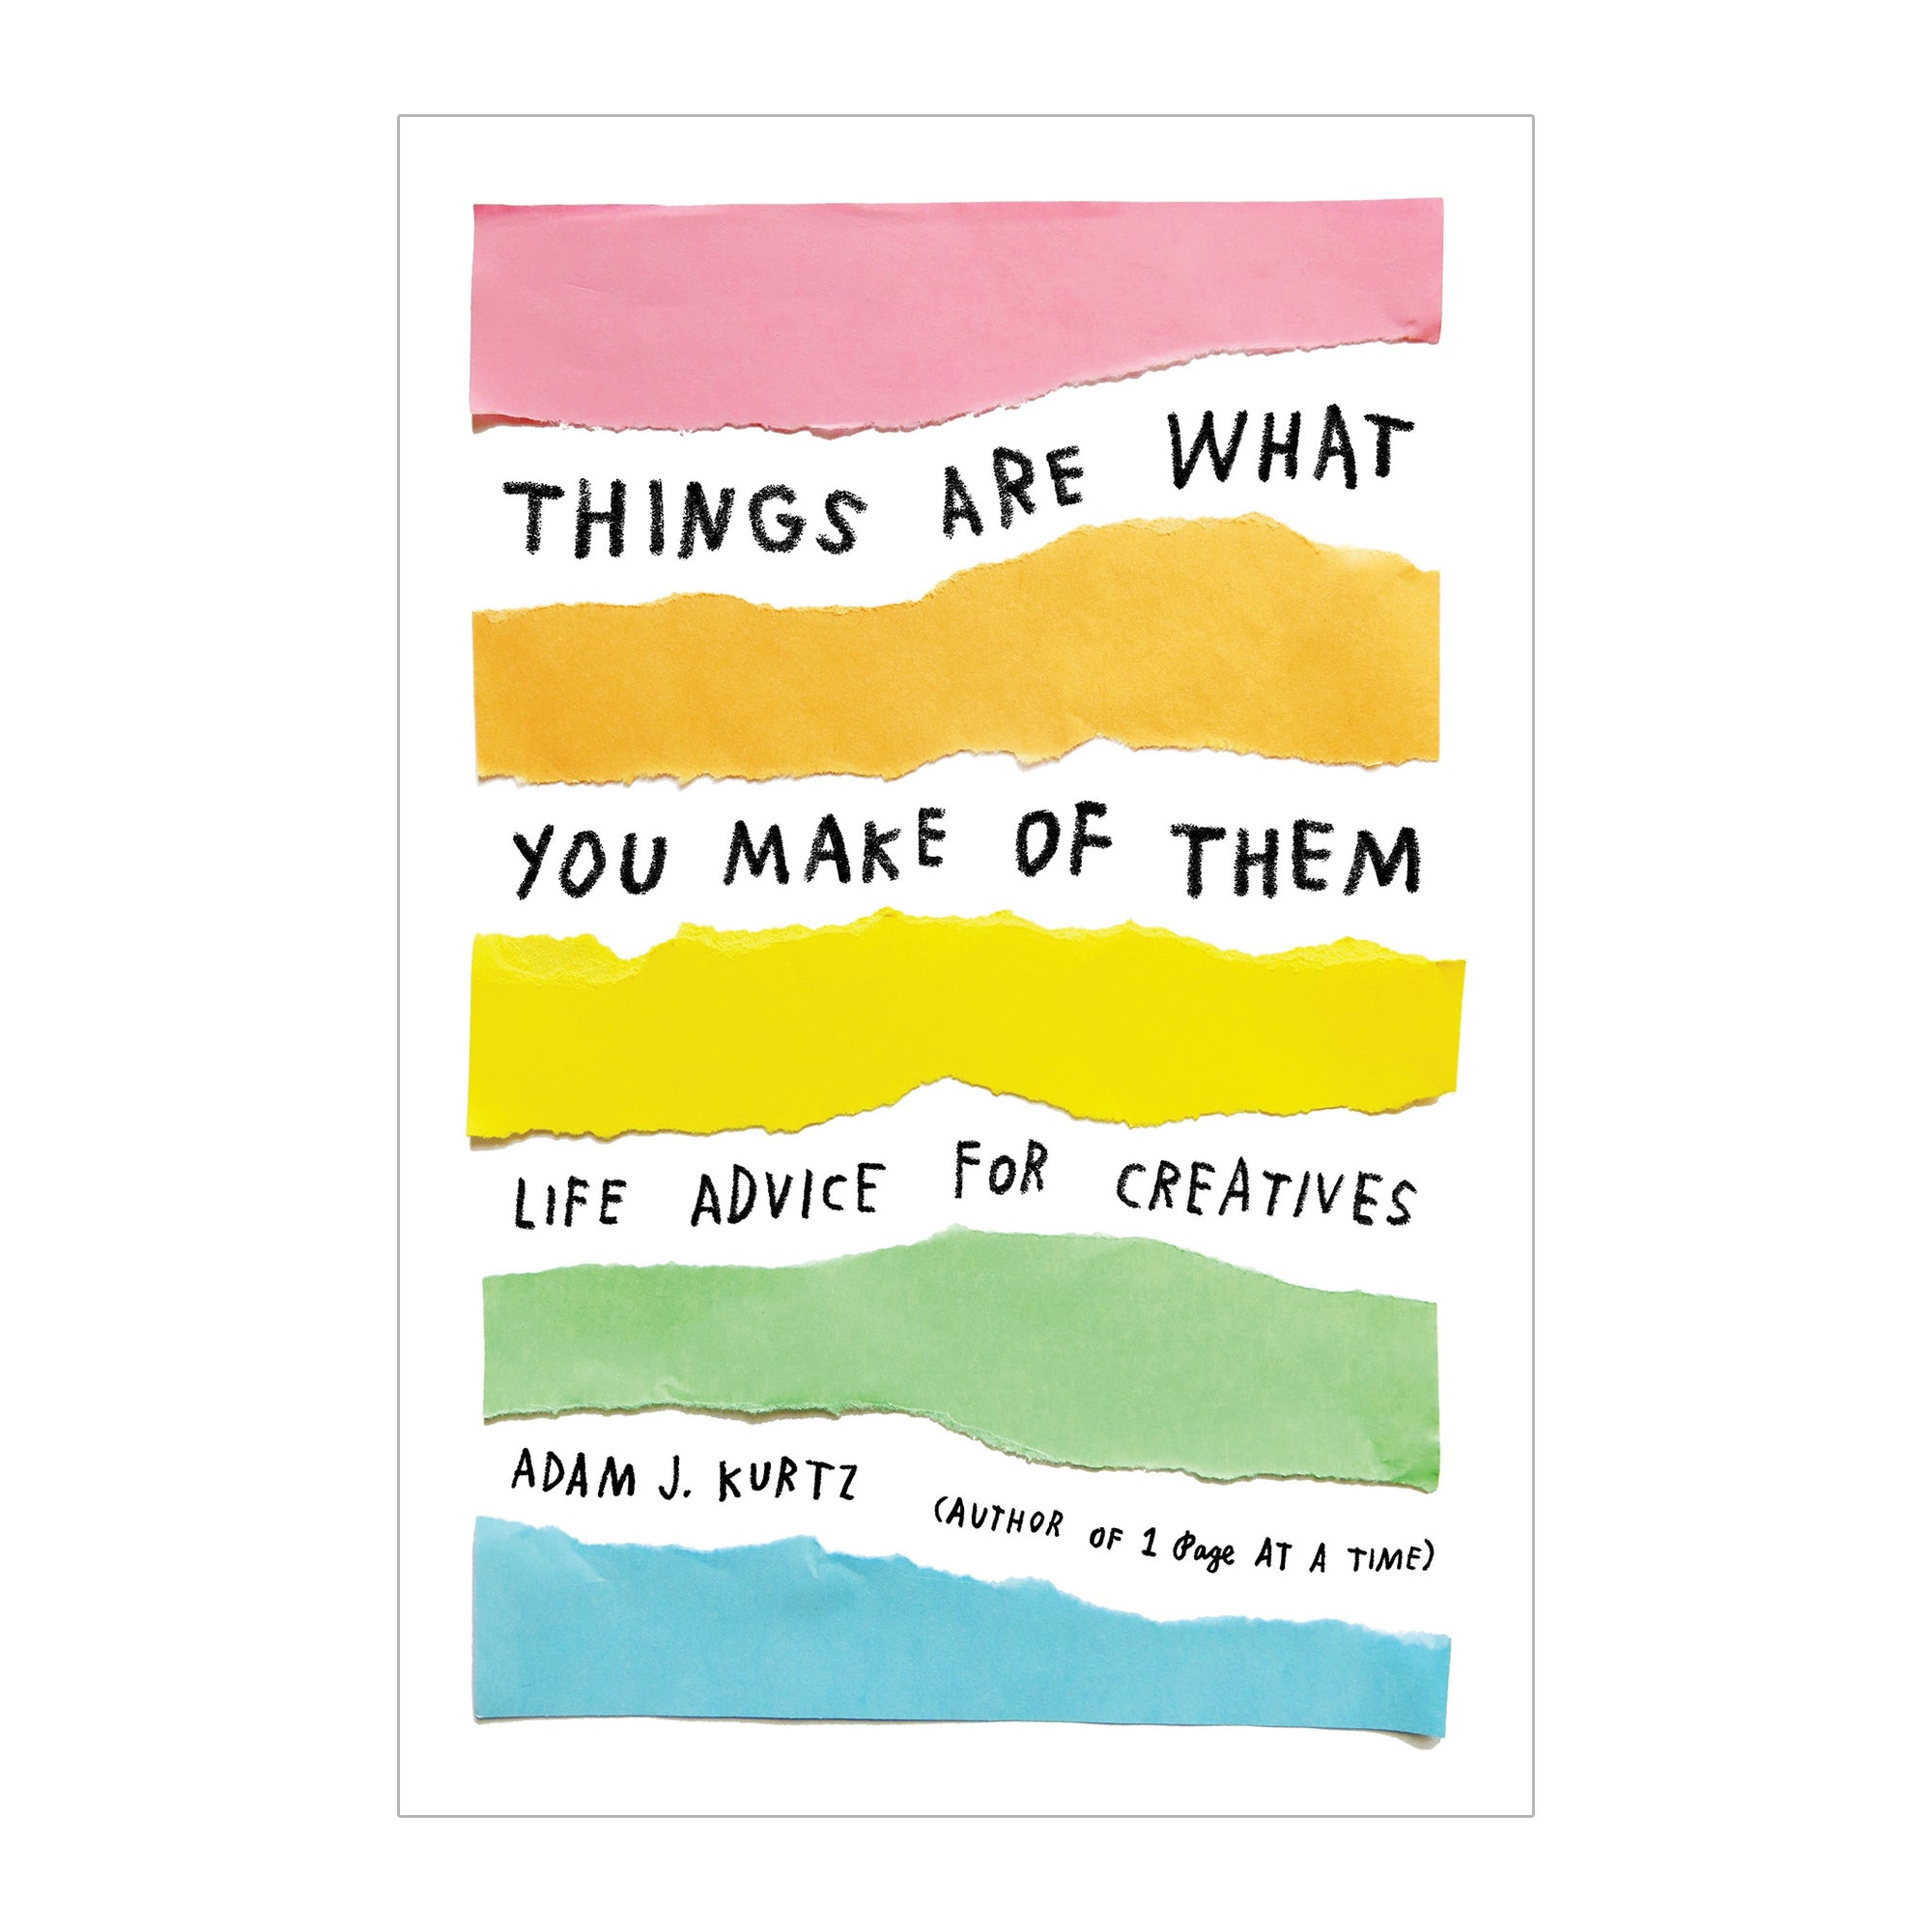 Things Are What You Make of Them: Life Advice for Creatives